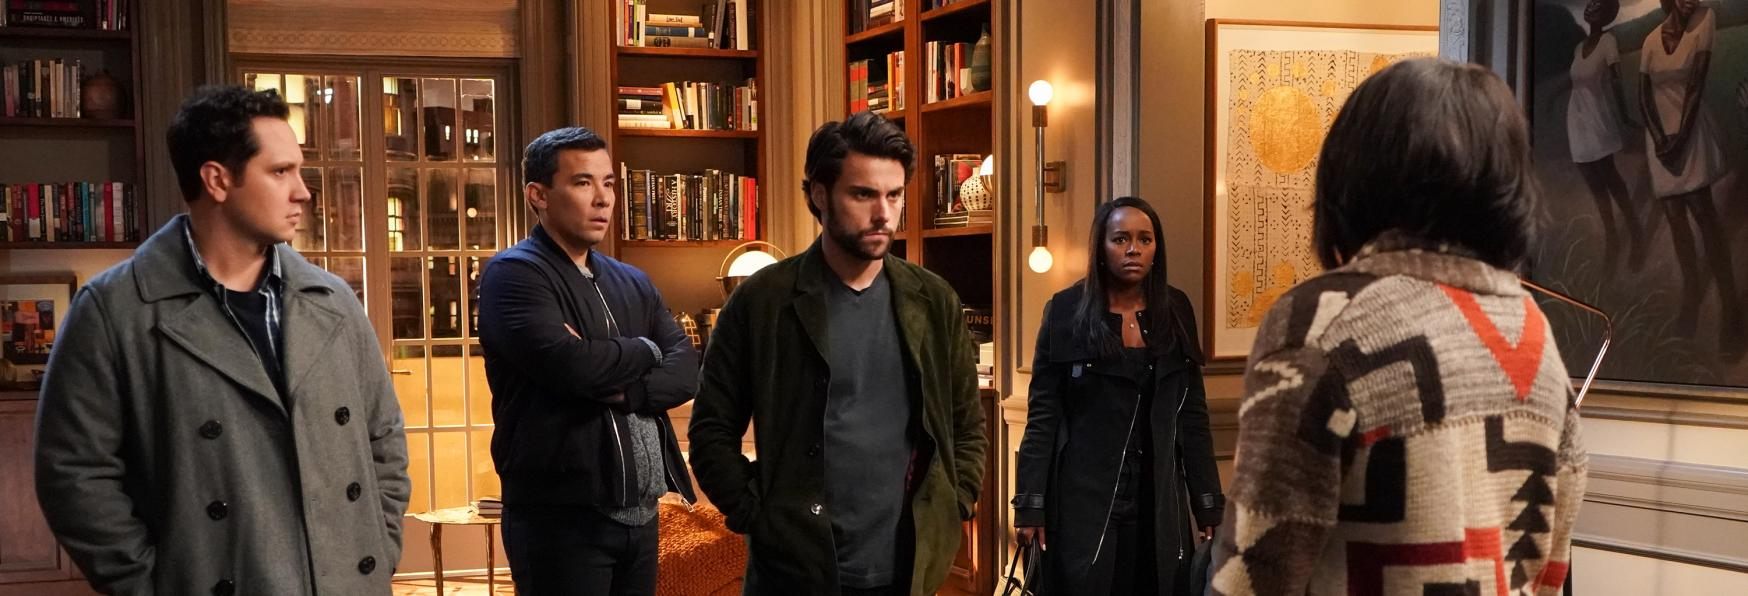 How to Get Away with Murder: Recensione dell'Episodio 6x10 della Serie TV ABC